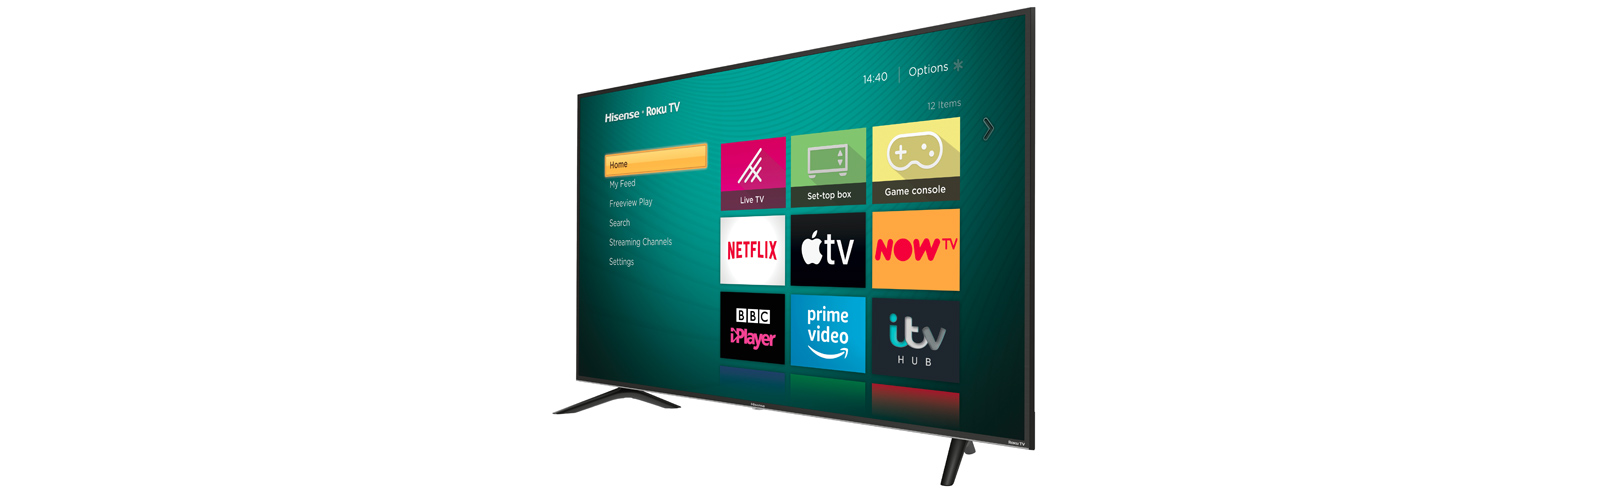 Hisense Roku TVs go on sale in the UK on November 29 via Argos